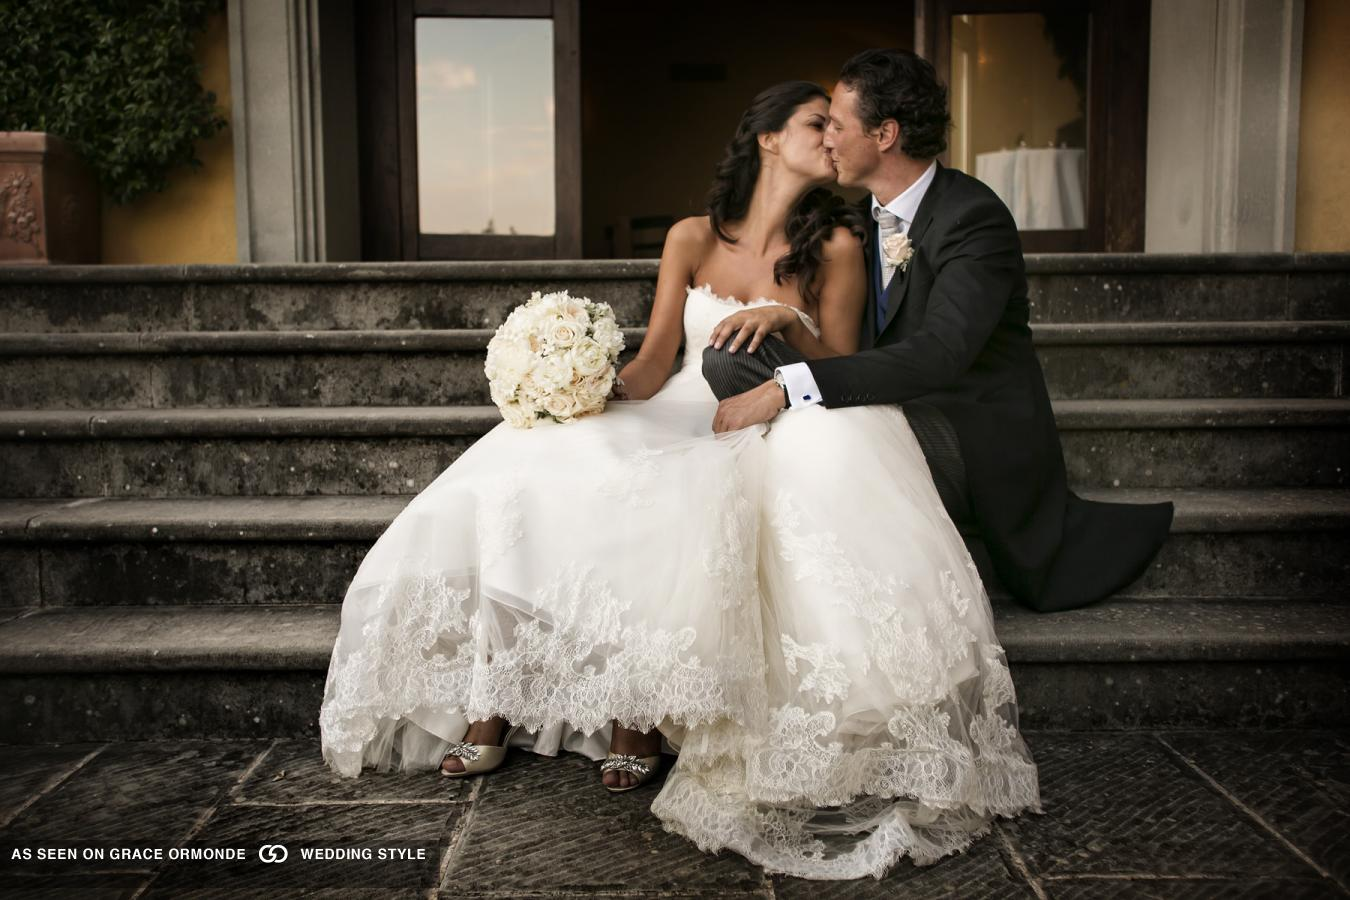 david-bastianoni-wedding-2015-15_0 :: Grace Ormonde :: Luxury wedding photography - 4 :: david-bastianoni-wedding-2015-15_0